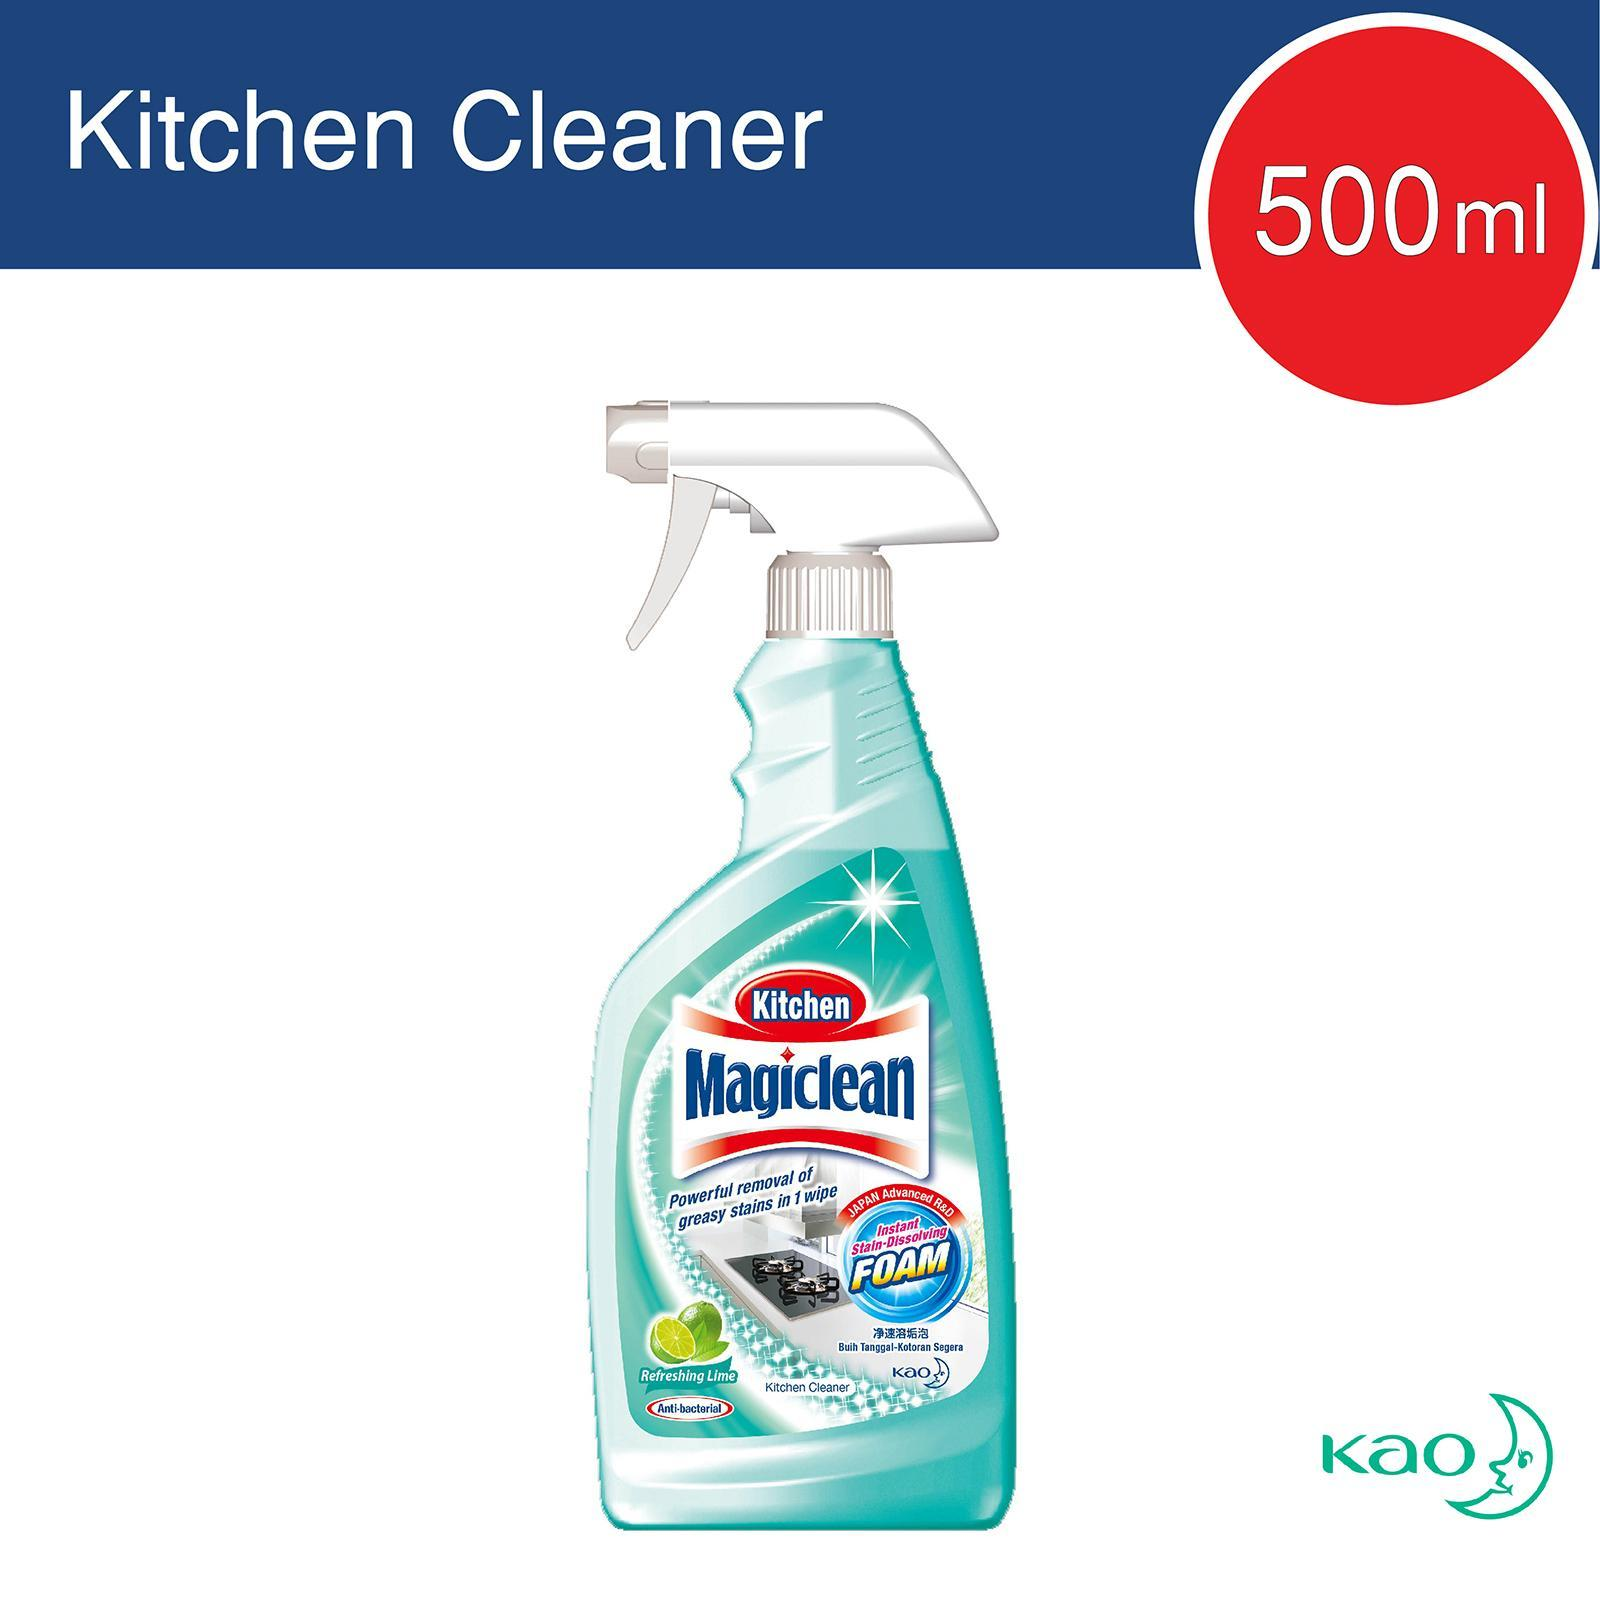 MAGICLEAN Kitchen Cleaner Lime Trigger 500ml